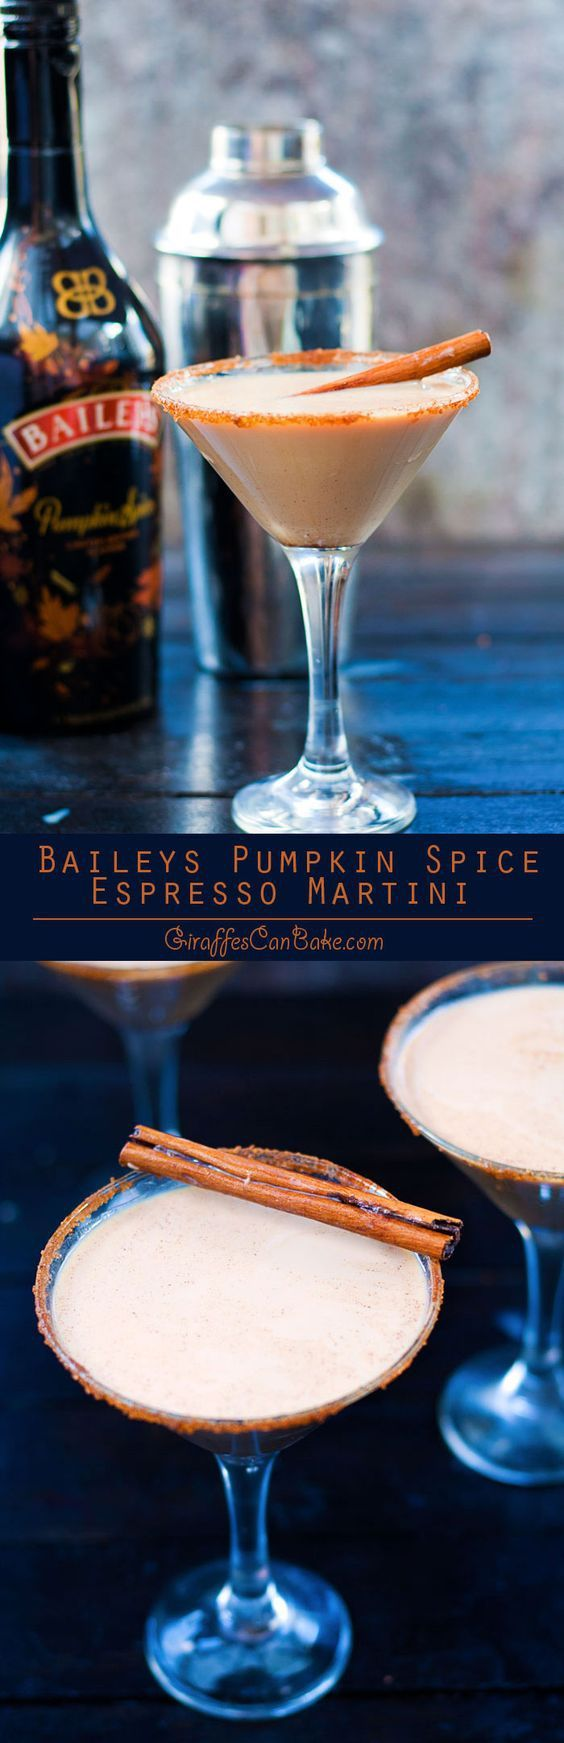 Baileys Pumpkin Spice Martini Cocktail